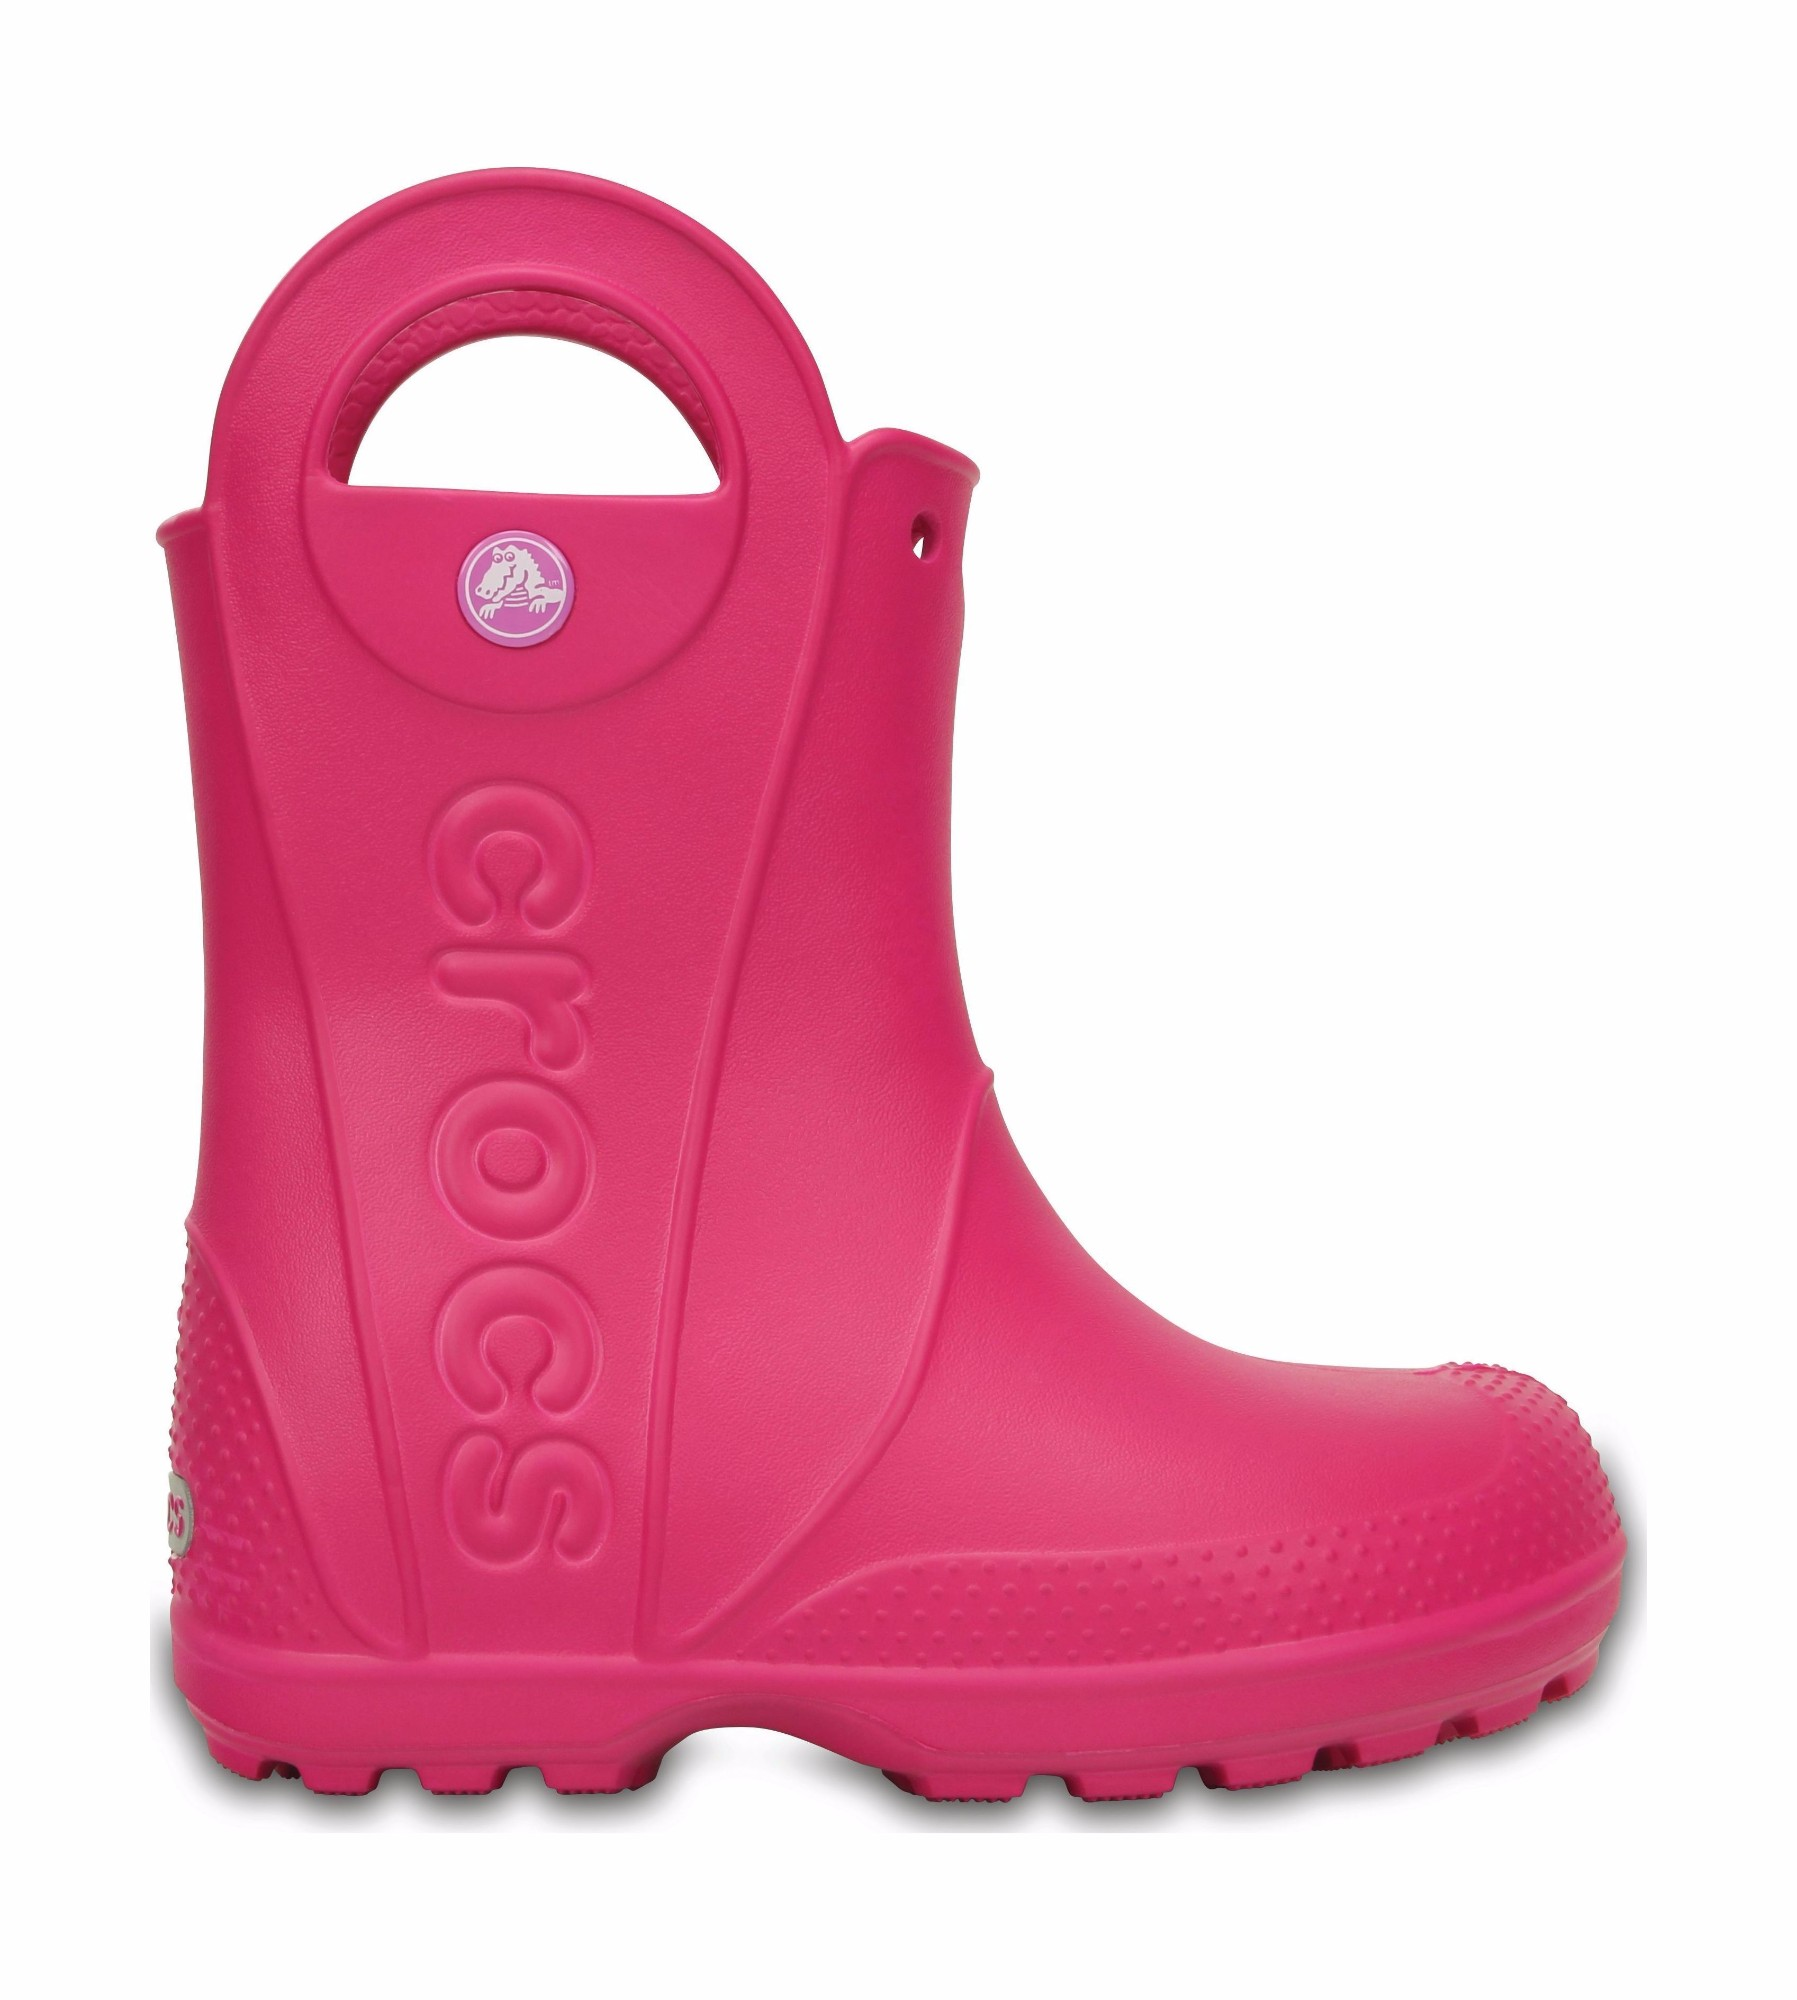 Crocs™ Kids' Handle It Rain Boot Candy Pink 35